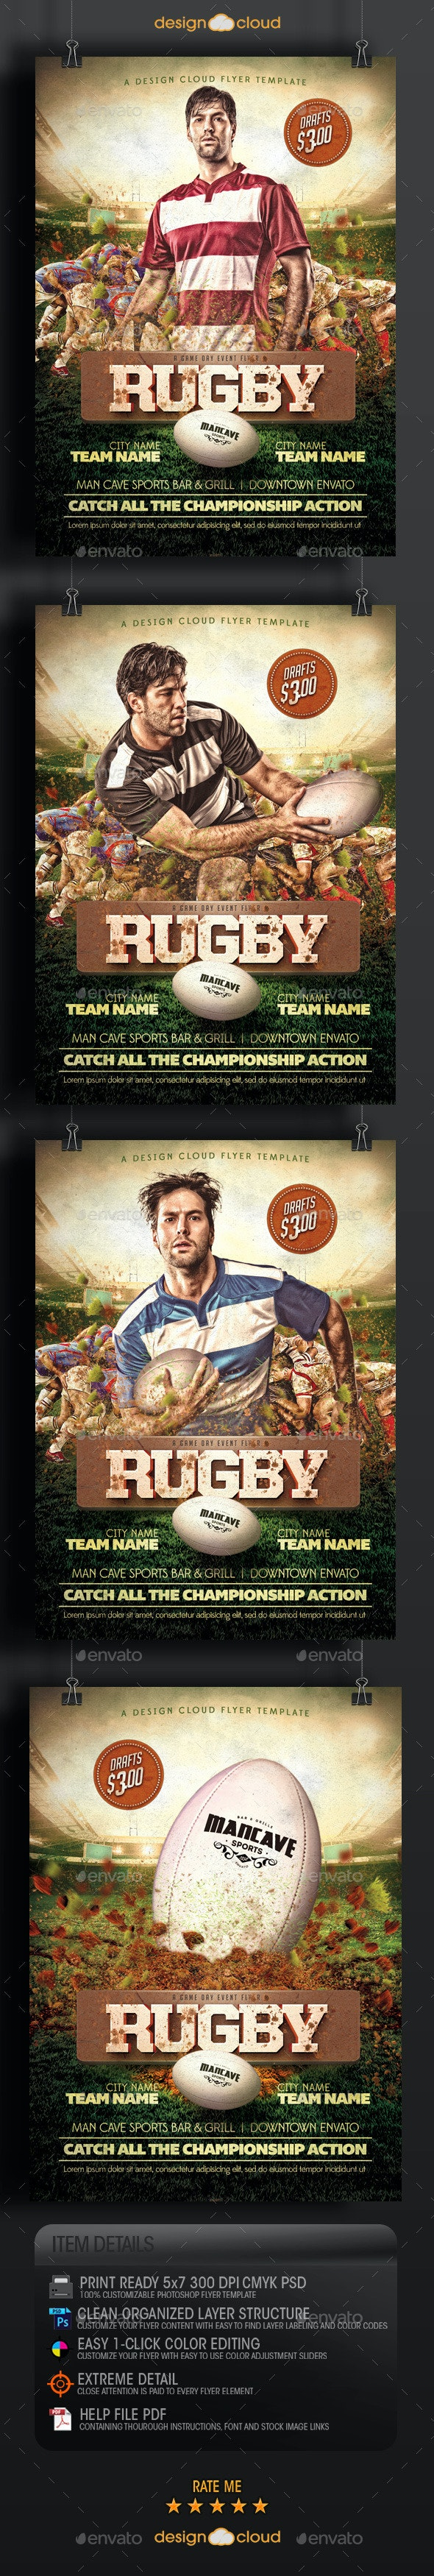 Rugby Game Day Flyer Template - Sports Events